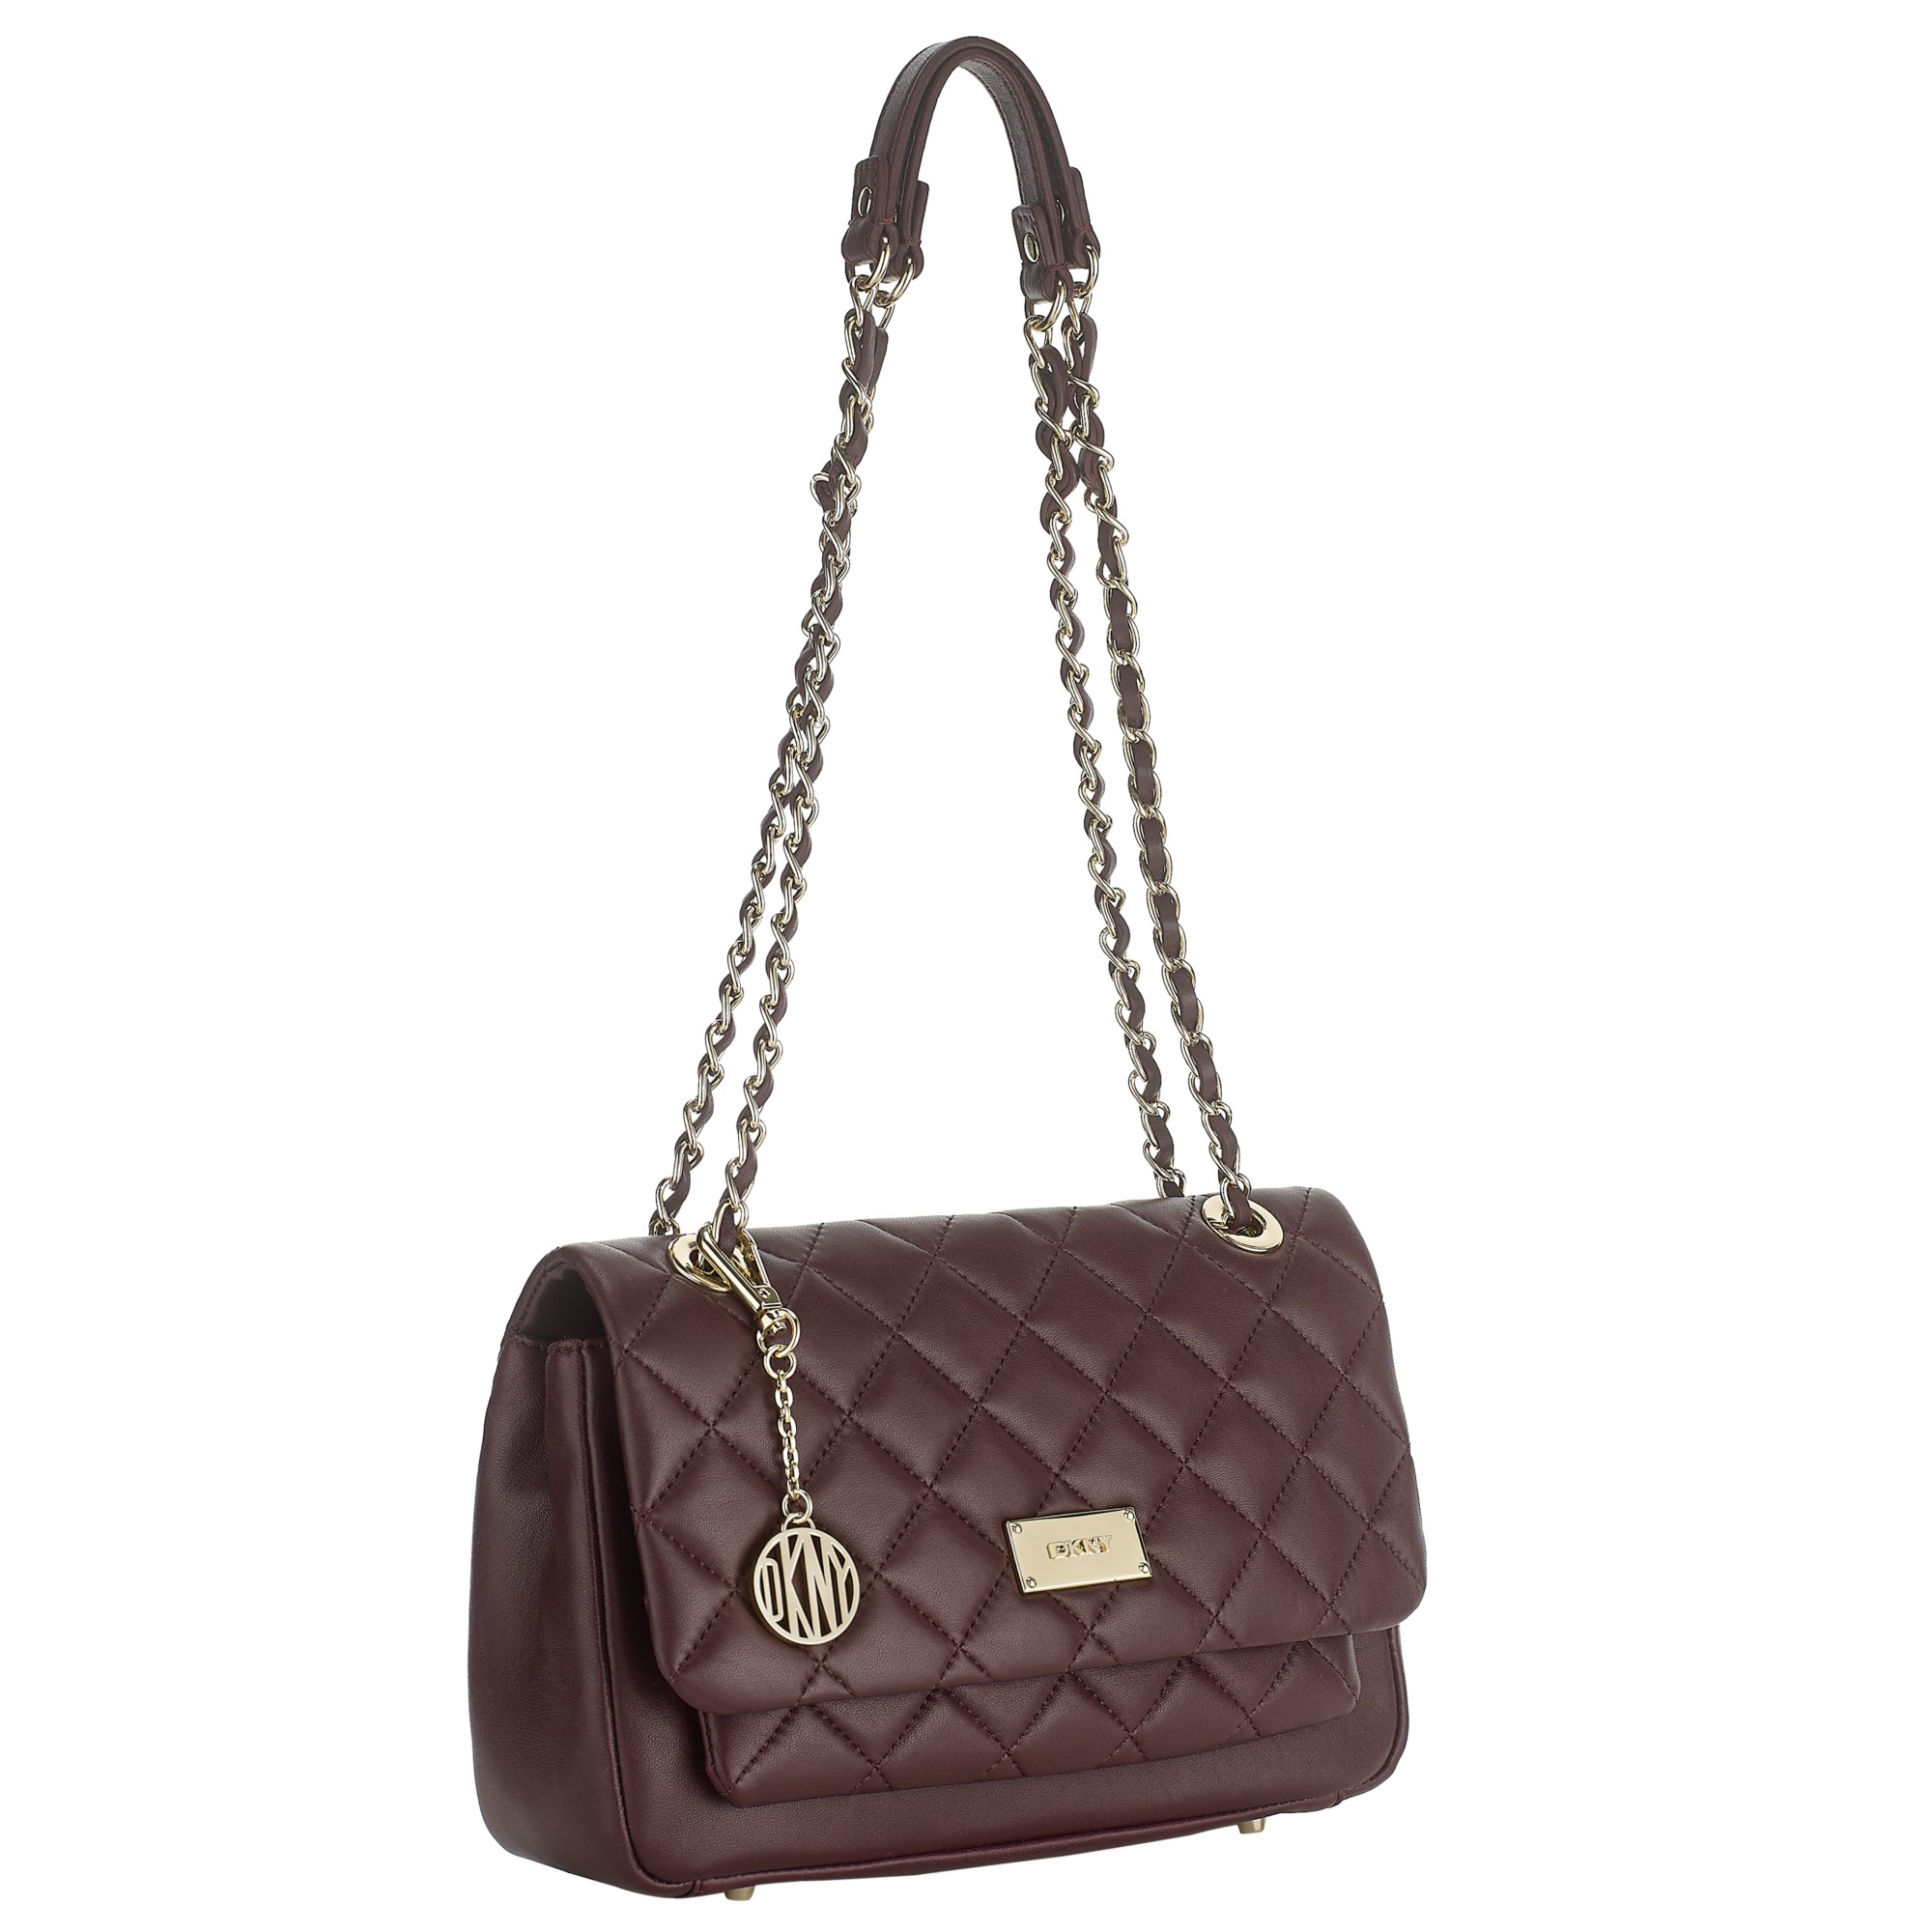 Lyst - Dkny Gansevoort Quilted Chain Shoulder Bag in Purple : dkny quilted shoulder bag - Adamdwight.com